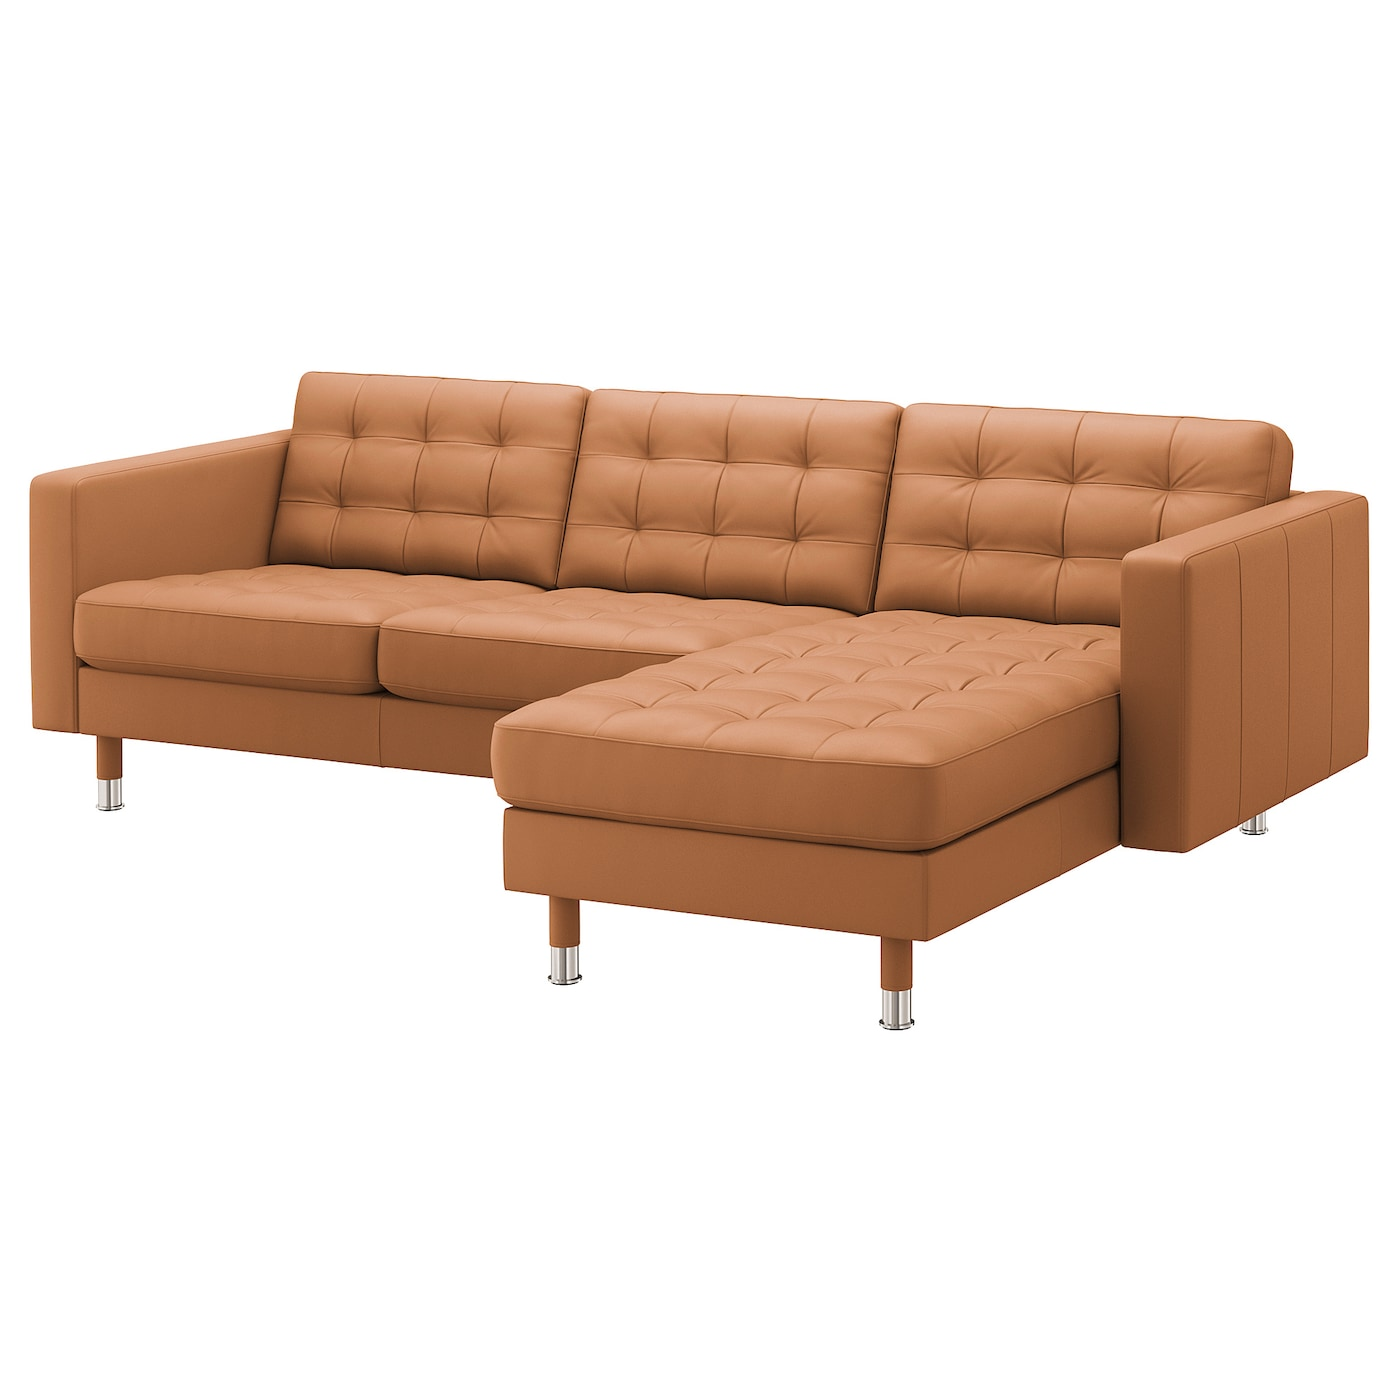 - LANDSKRONA 3-seat Sofa - With Chaise Longue, Grann/Bomstad Golden